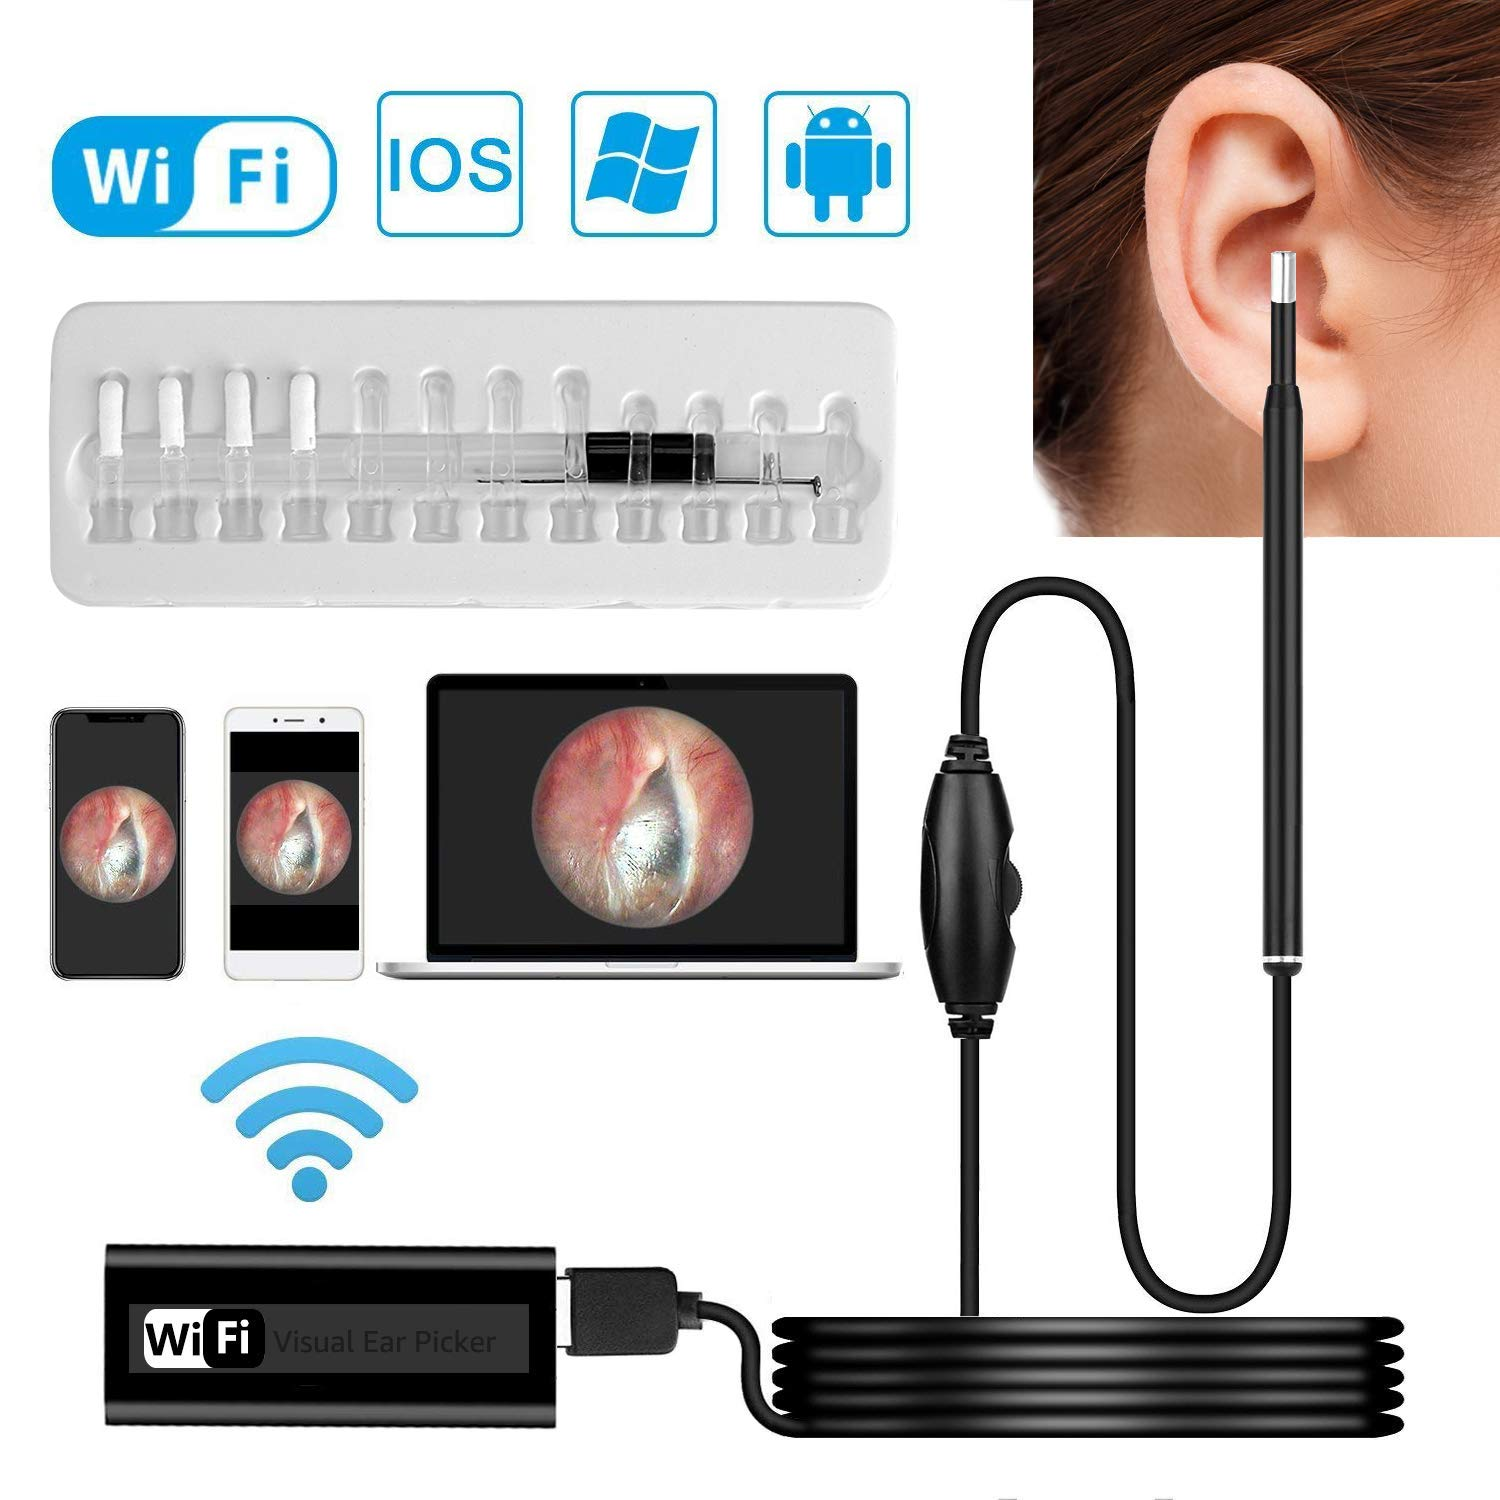 Otoscope, Wisdomspot Ear Wax Removal Tool, Ear Cleaner,Wireless Ear Otoscope Inspection Camera with 6 LED Lights for Ear Wax Removal,Compatible with iPhone Android Phones and Windows & MAC